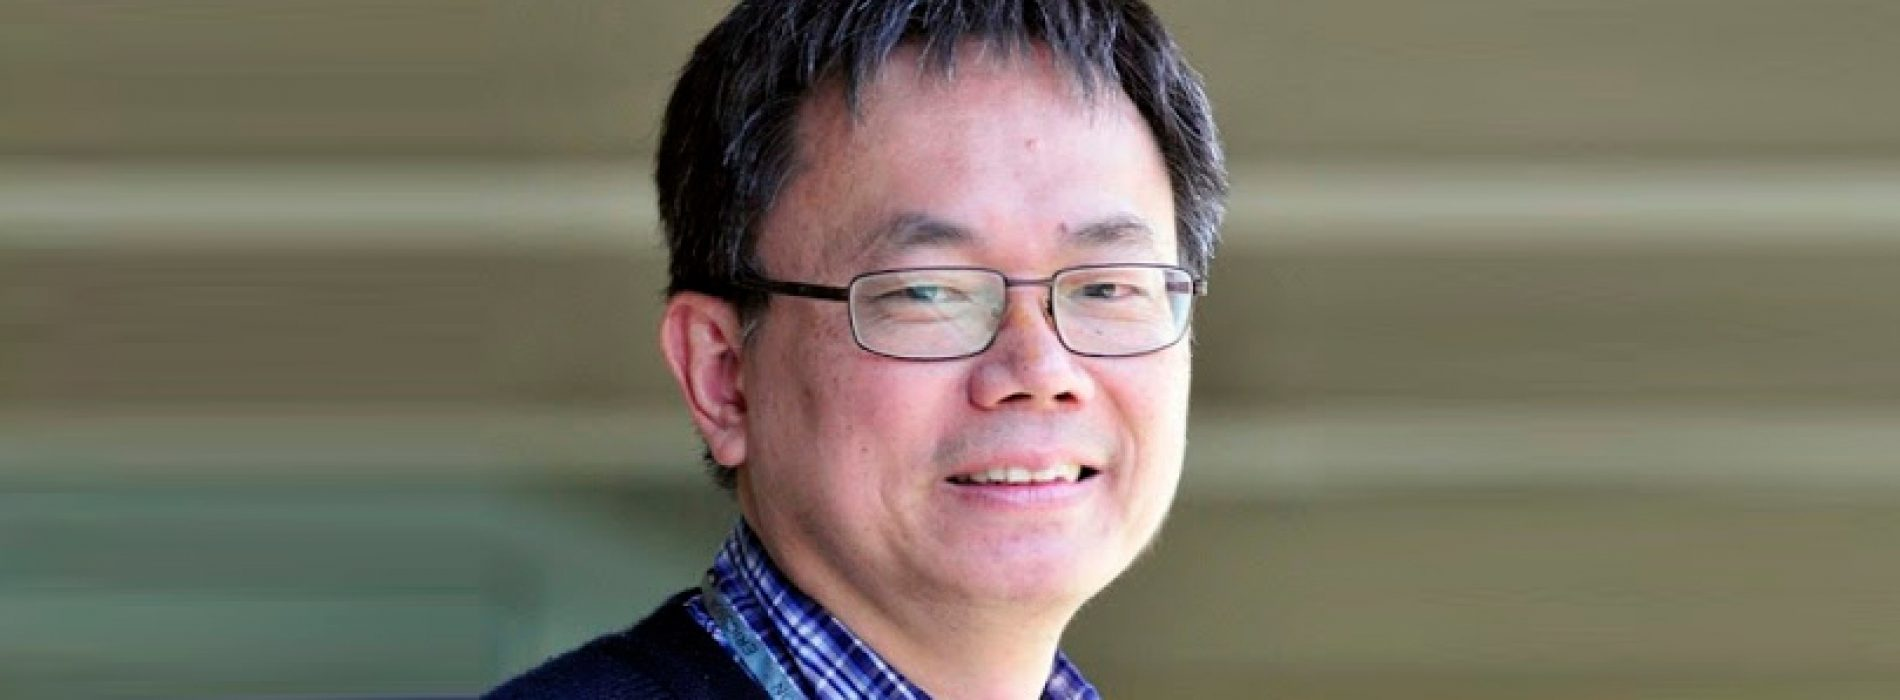 """Academic Mario Chiong on possible treatments for Covid-19: """"The only alternative right now is to use medicines that already exist to see if they have effects on this virus"""""""